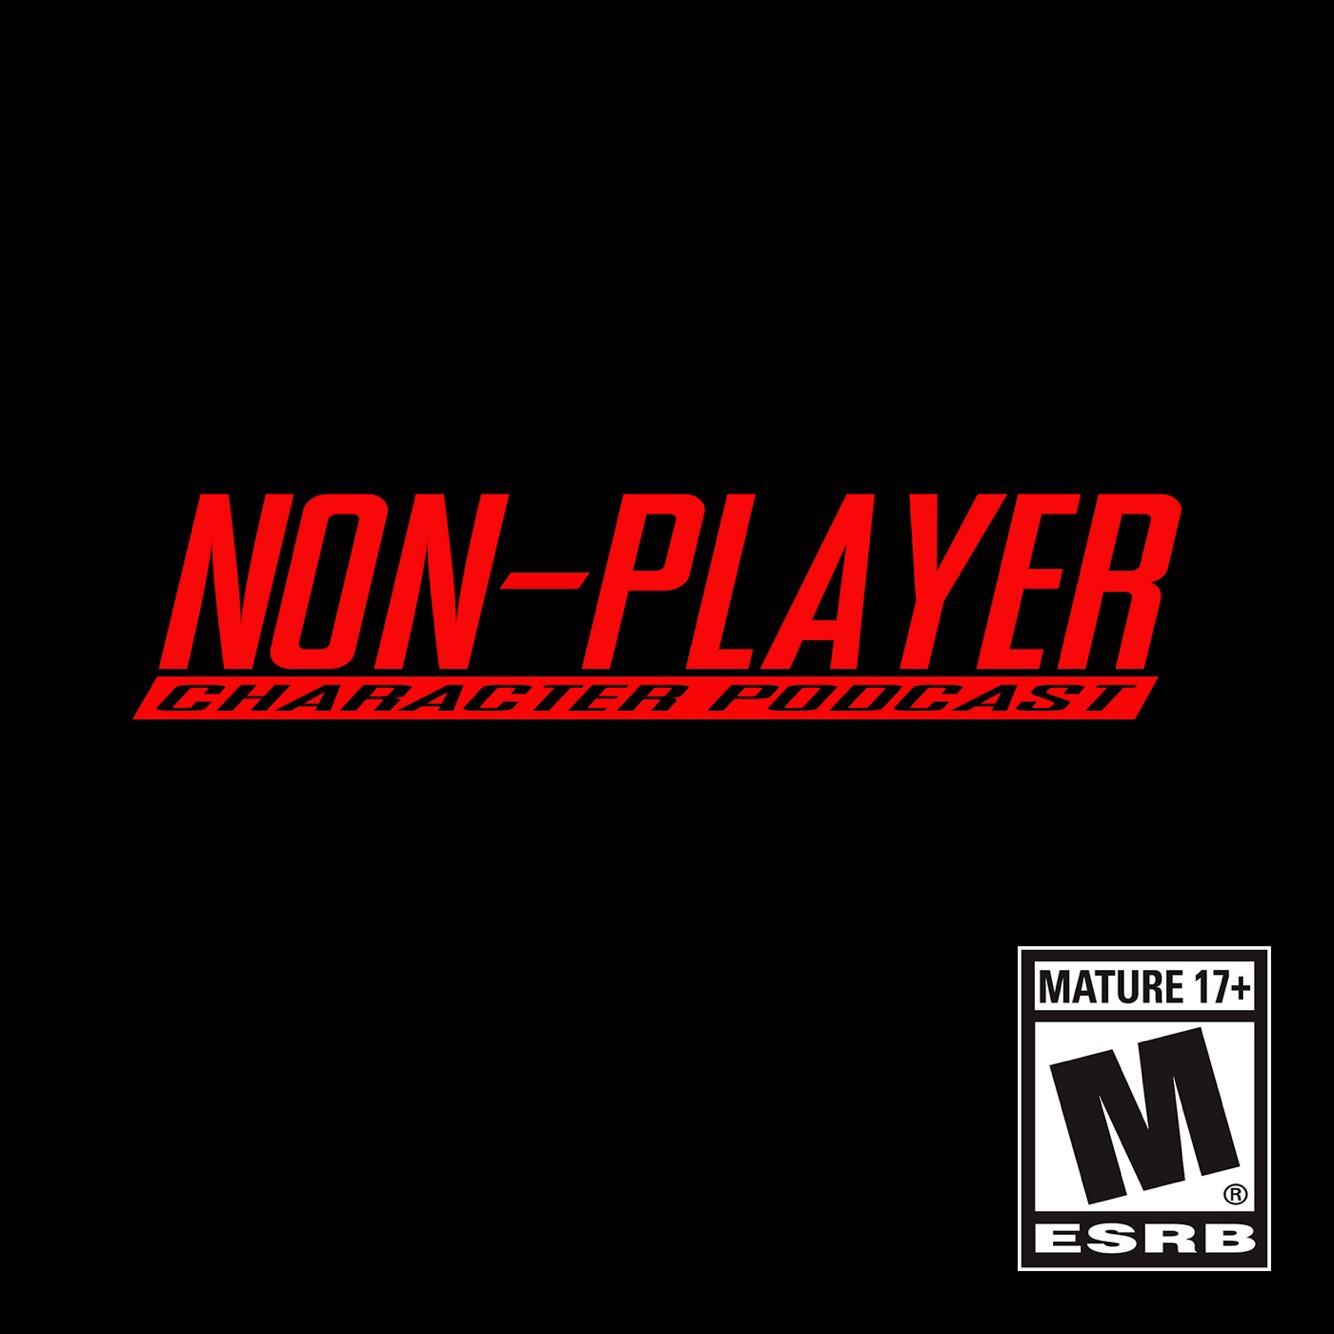 """The Non-Player Character Podcast - Hosted by The Non-Player Character Paul and his team of co-host NPCs, Katy, Dan, Leonard and Kent, The Non-Player Character Podcast brings you the latest in video game news from around the industry. Got a video game publisher cheating people out of their hard earned money? They're there! Another """"Triple A"""" Game getting delayed yet again? They have something to say about it! Are you angry that you have to pay money to play video games when it's just a hobby for you? Well, shut up, pay the money, and play the game! Don't be a tool! People worked hard on that game!"""